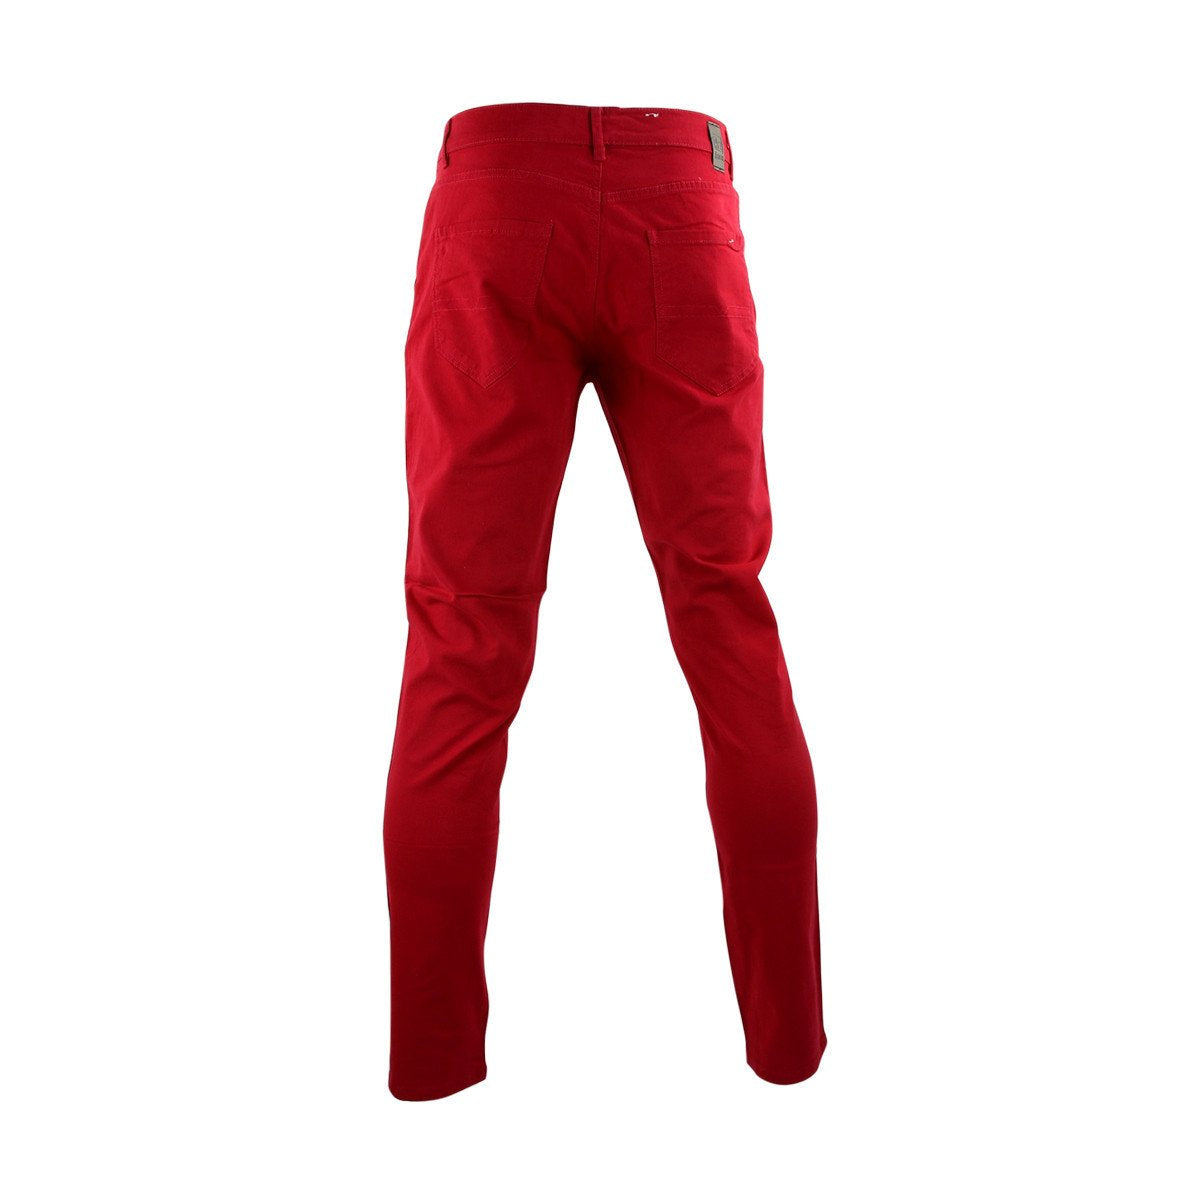 Azazel Men's Twill Stretch Pant - Red - V.I.M. - 2